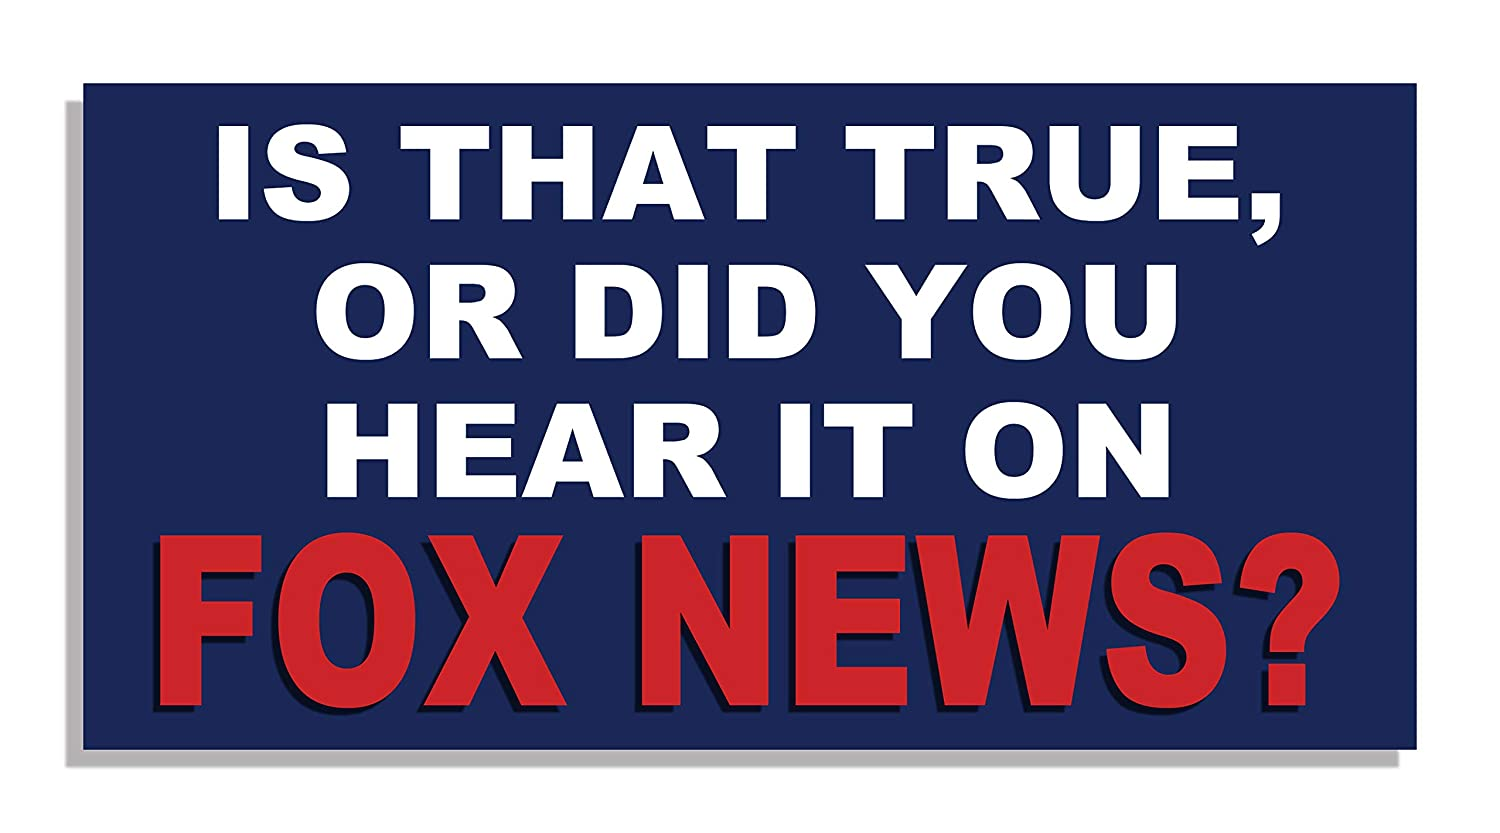 Is that true or did you hear it on fox news bumper sticker quote me printing